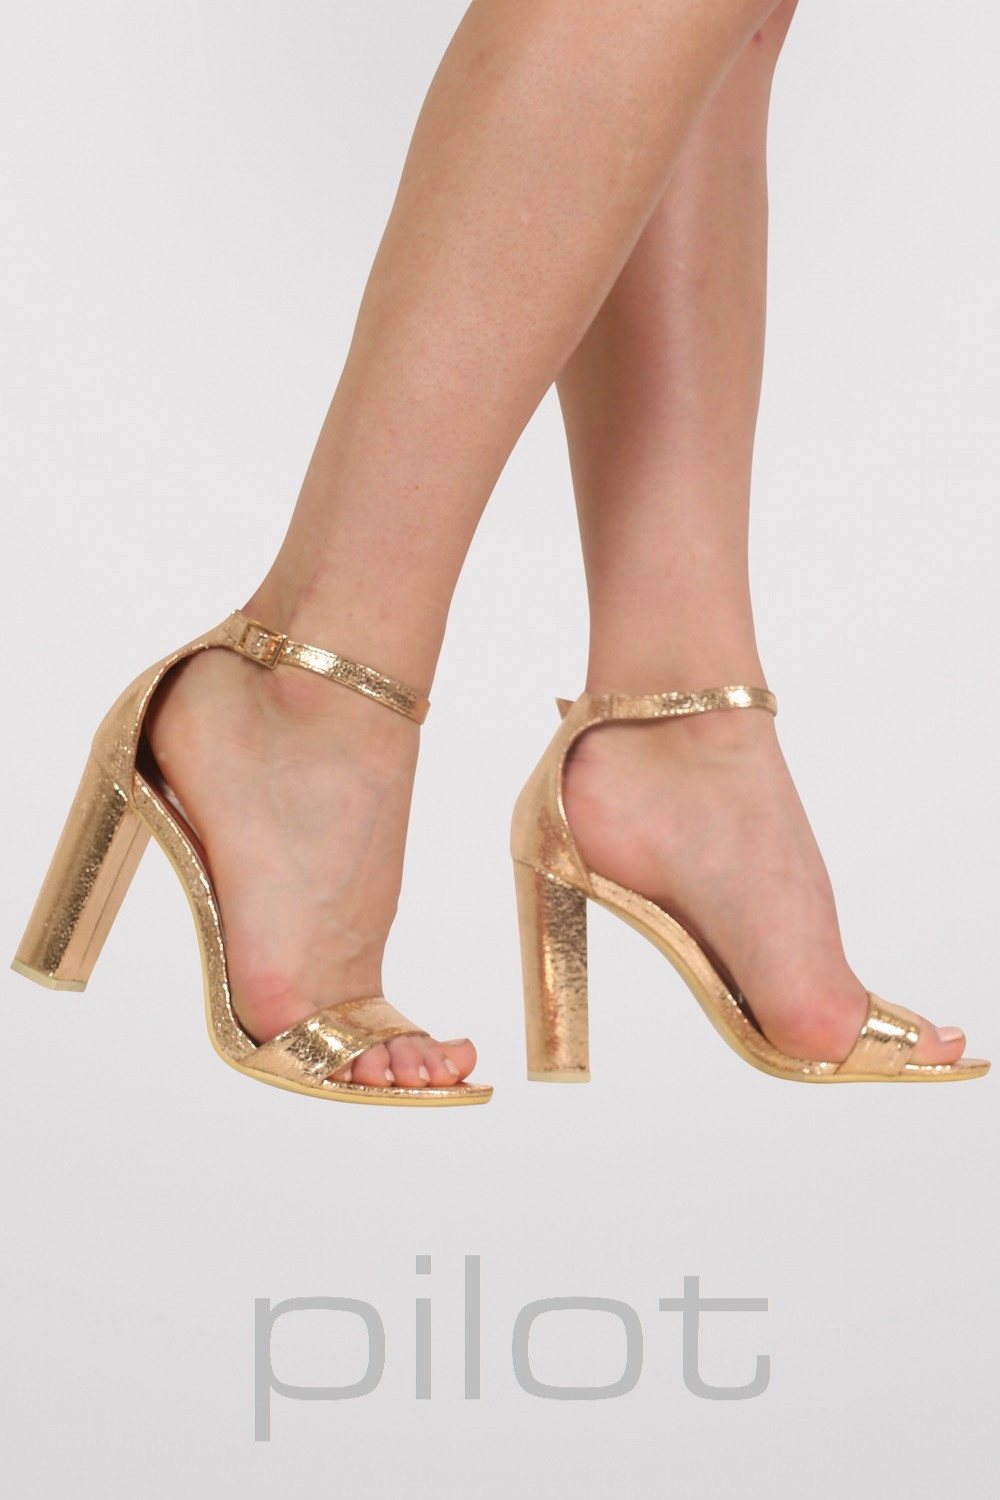 6f4f2ca70a99 Block Heel Barely There Strappy Sandals in Rose Gold MODEL SIDE